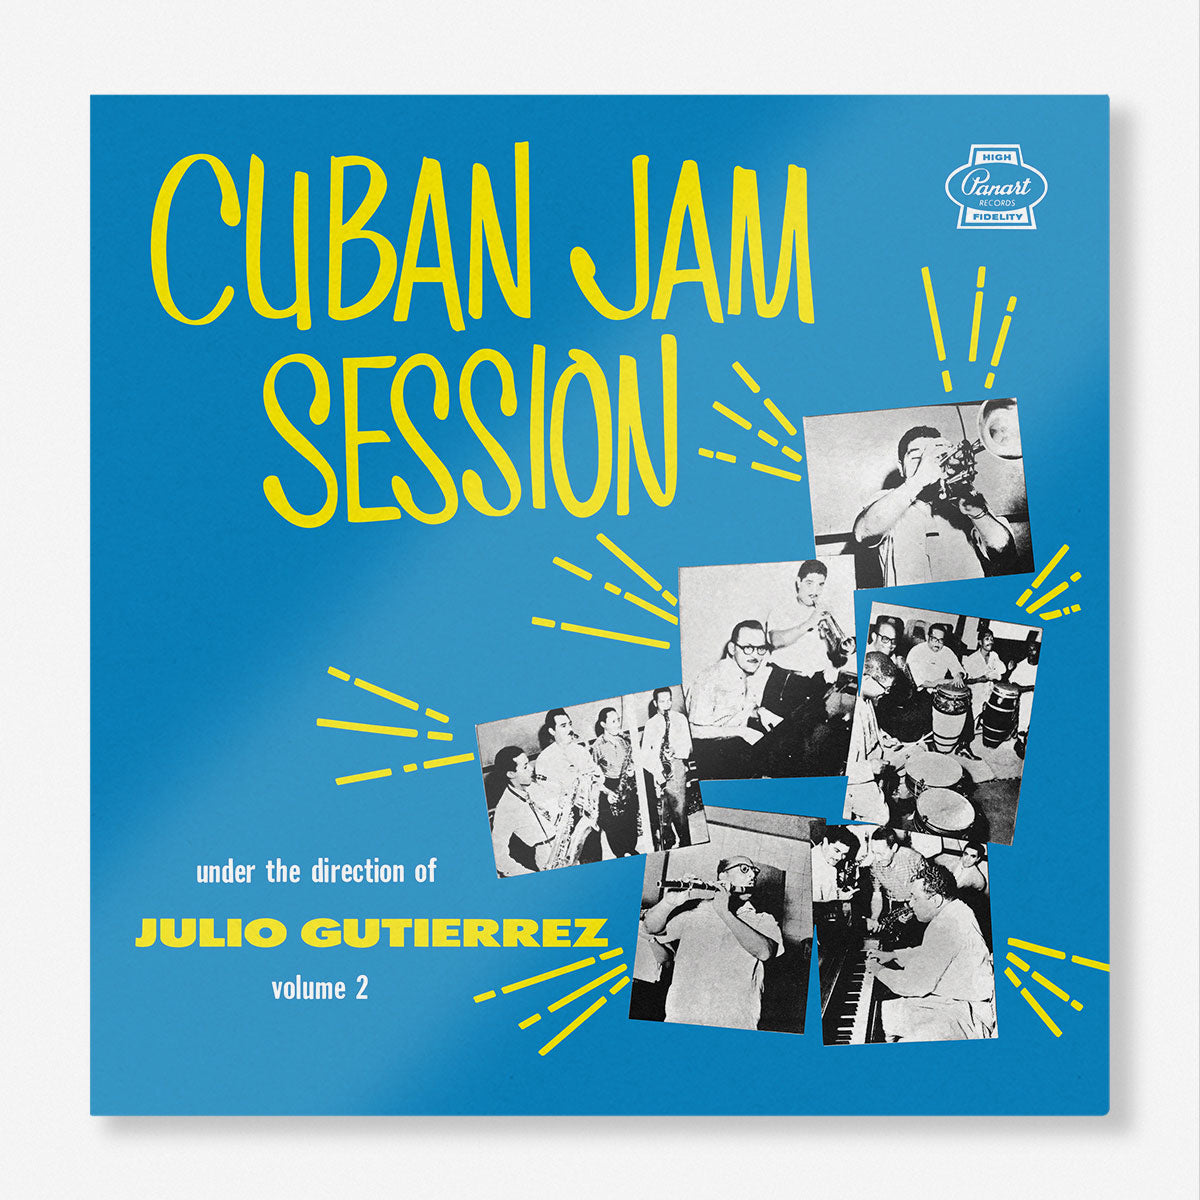 The Complete Cuban Jam Sessions 5 Cd Box Set Craft